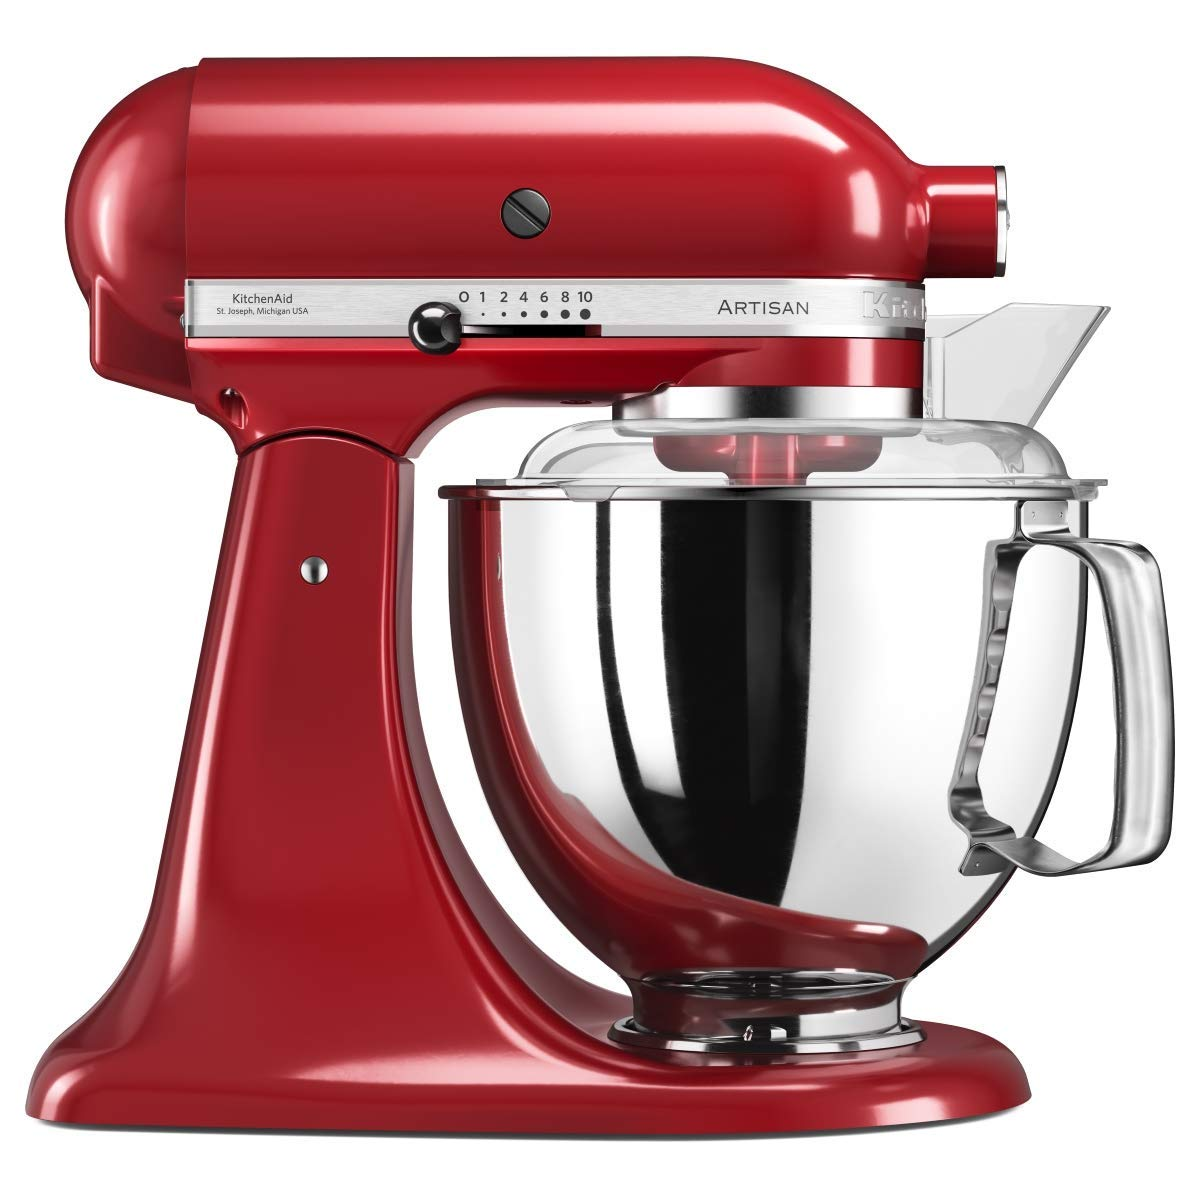 KitchenAid Artisan 4,8l Image